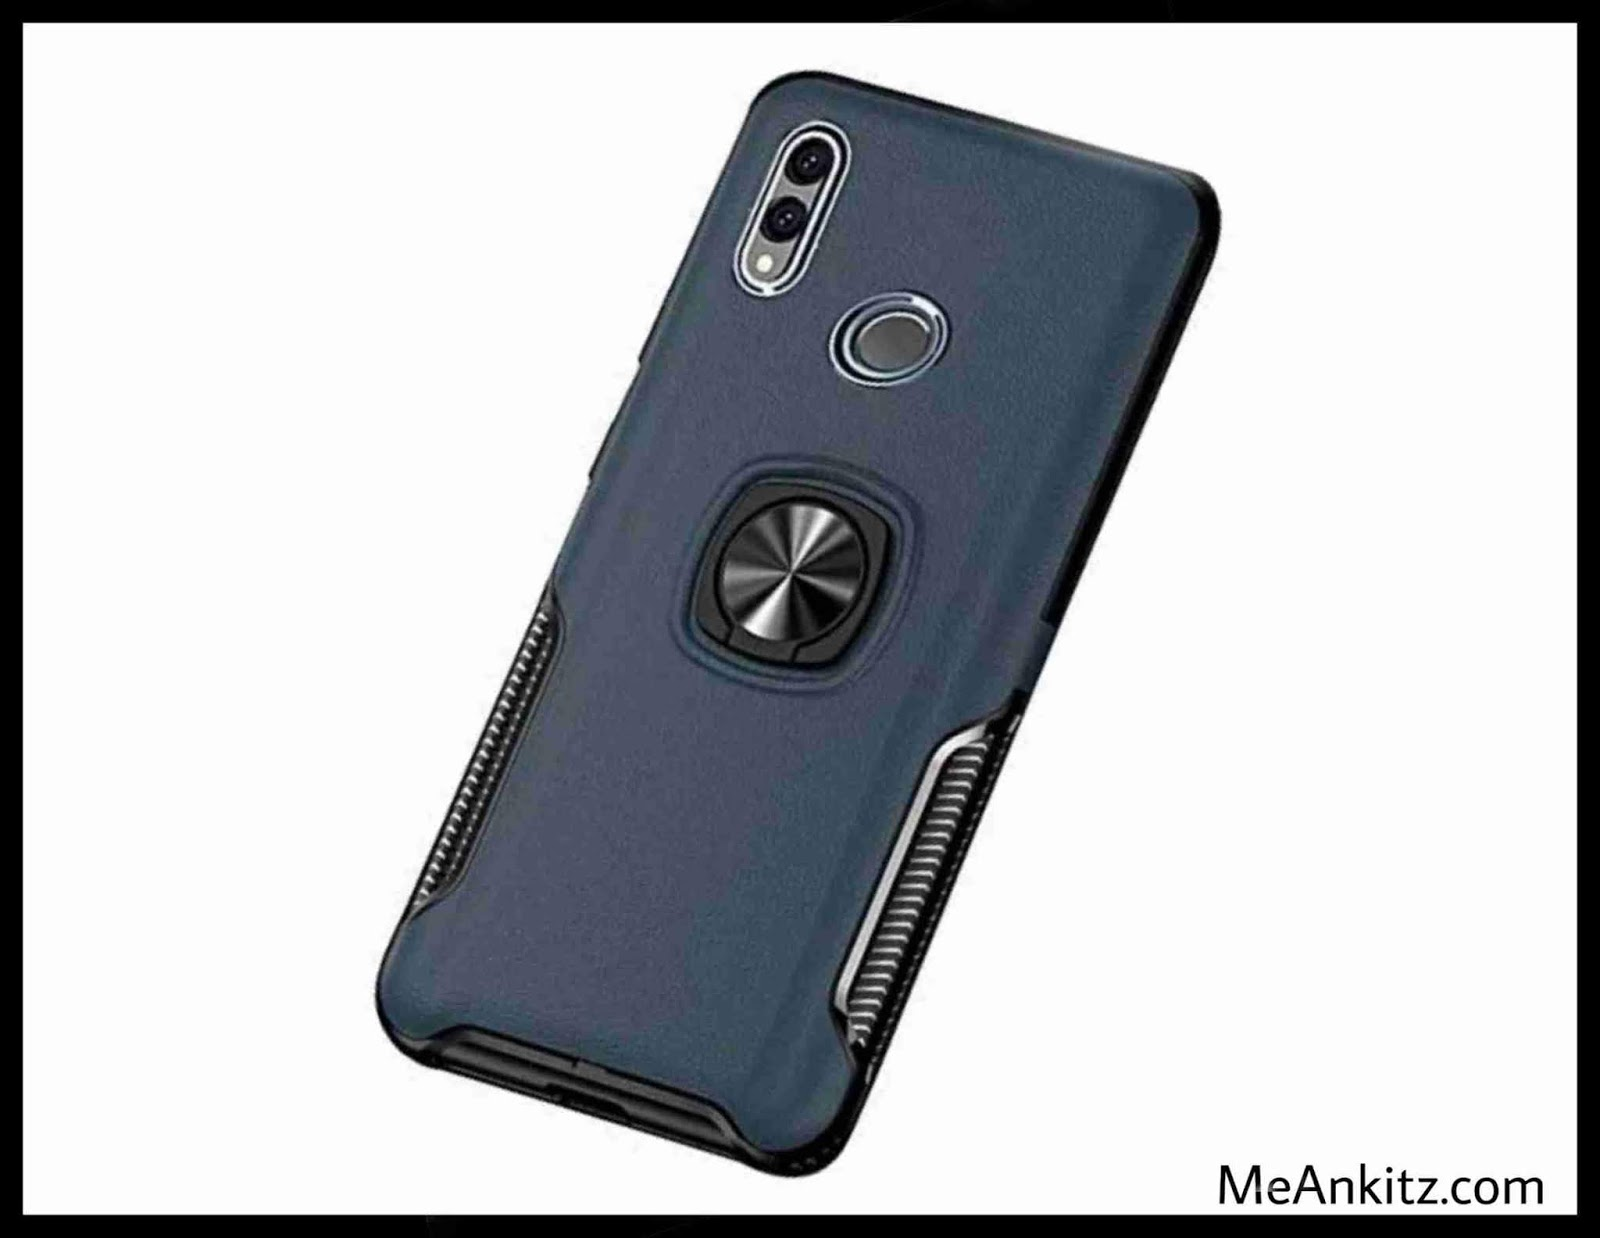 Top 10 covers for Redmi Note 7 and Note 7 pro.